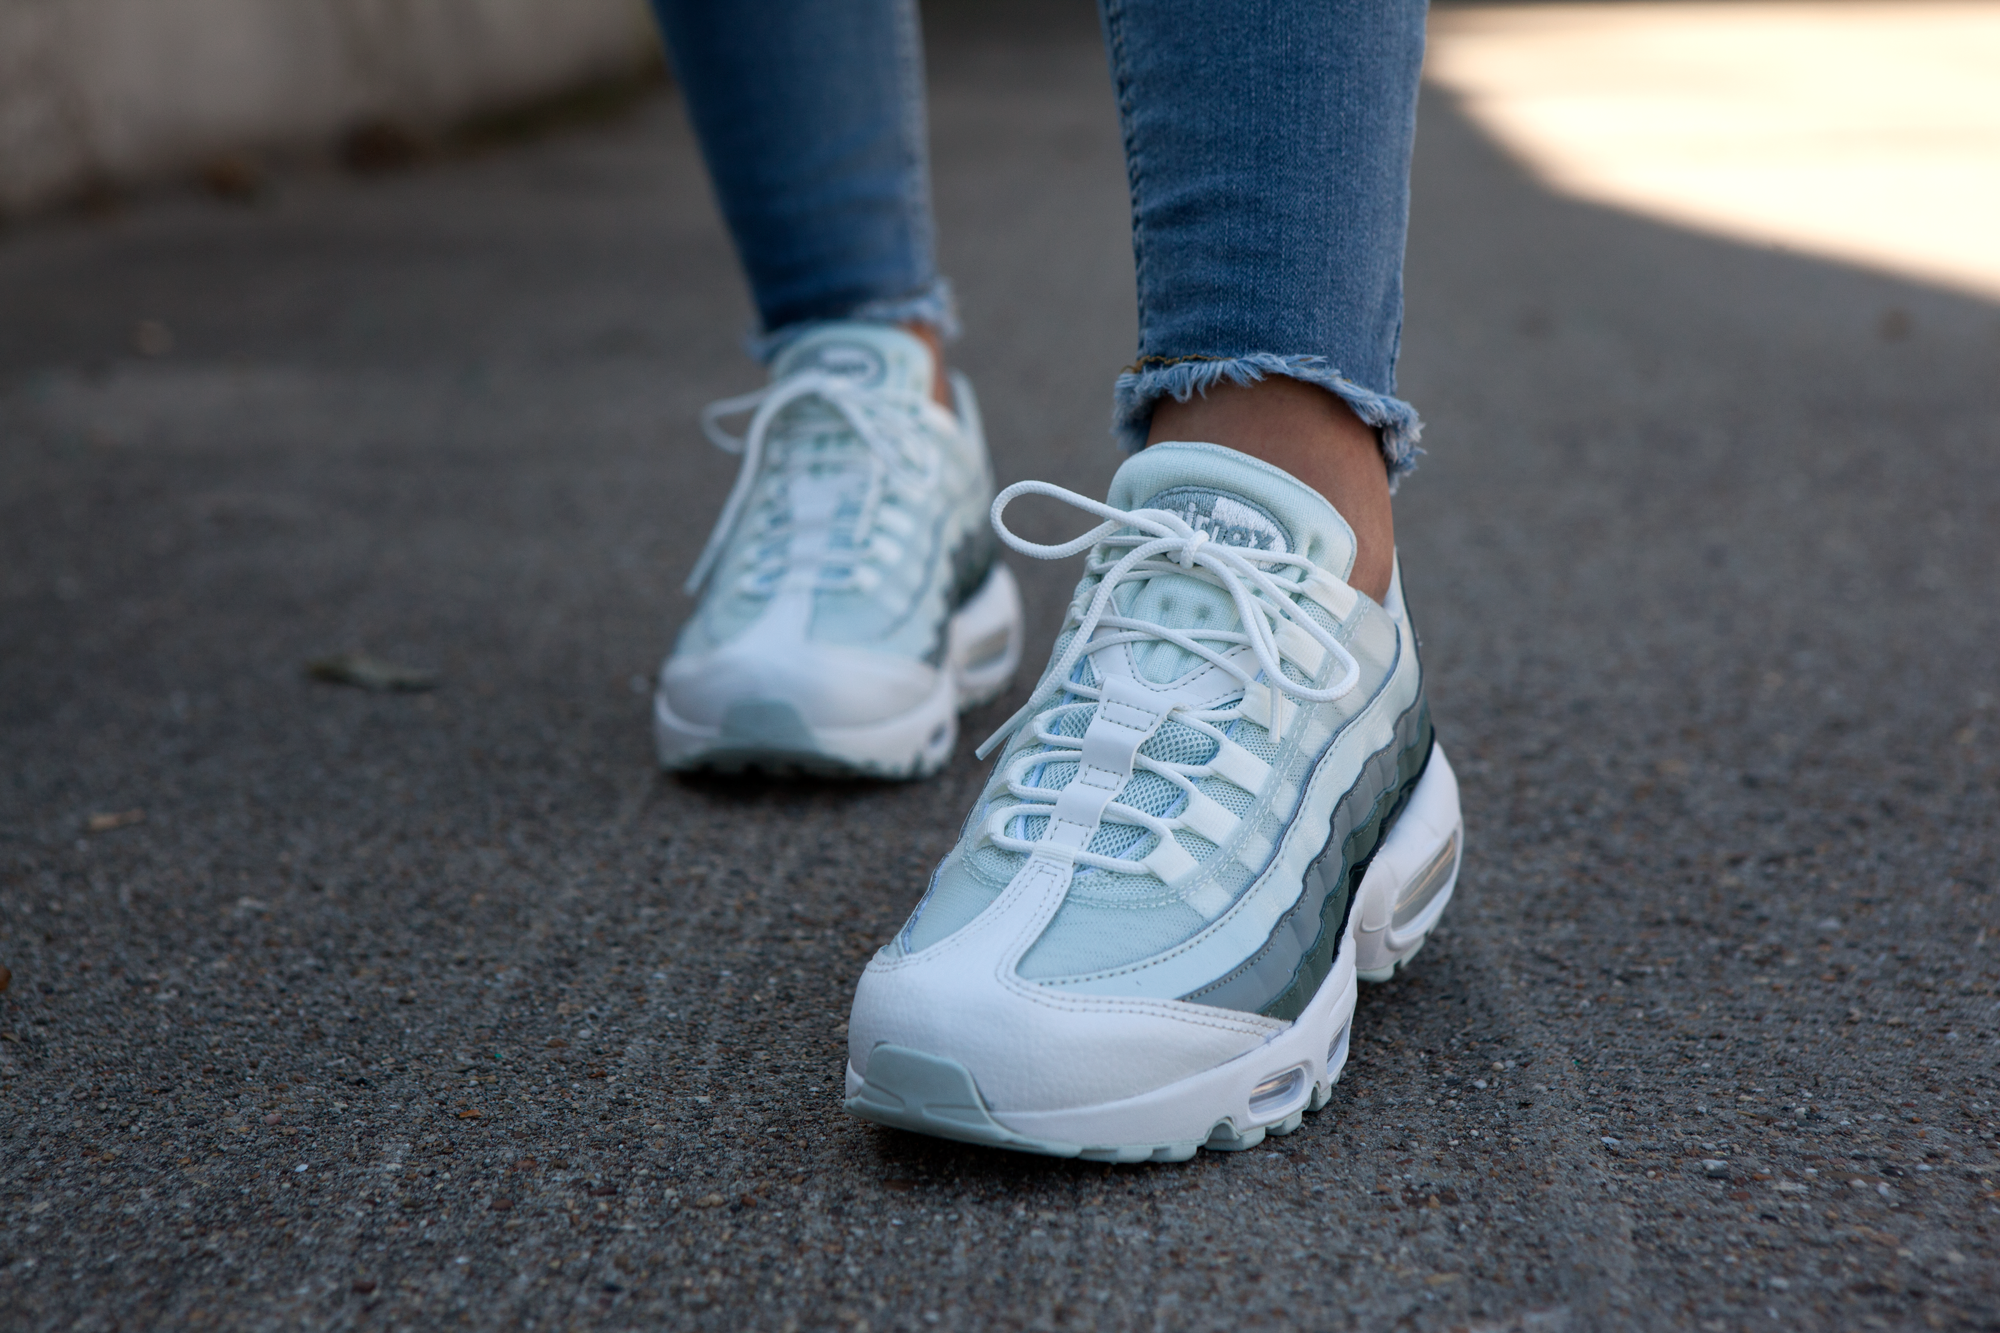 3b3d583aa45 Nike Air Max 95 | Blauw/Grijs | Dames | Shoes Please in 2019 - Nike ...